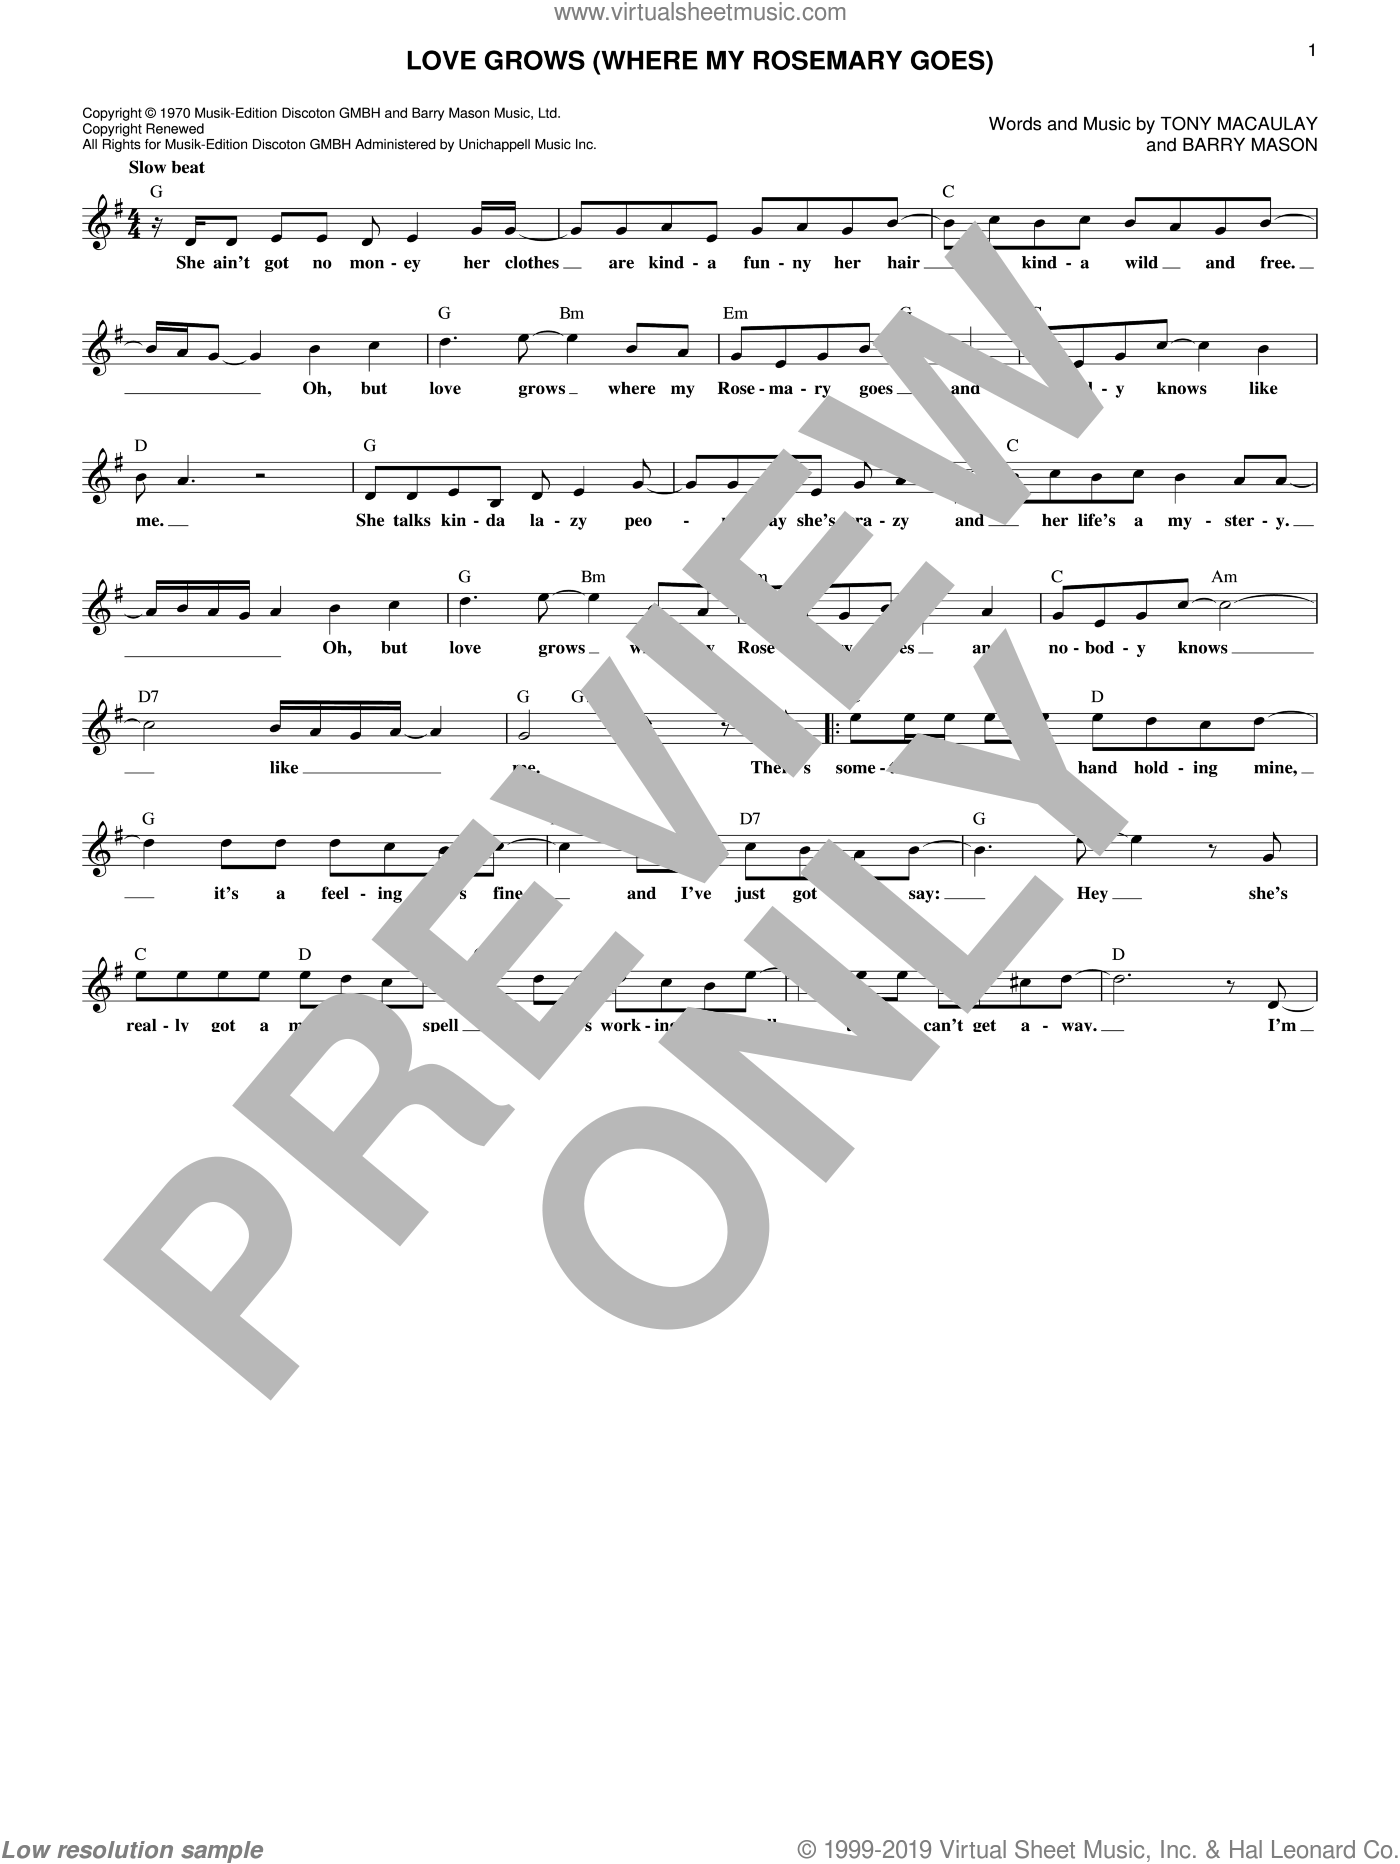 Love Grows (Where My Rosemary Goes) sheet music for voice and other instruments (fake book) by Edison Lighthouse, Barry Mason and Tony MacAuley, intermediate skill level